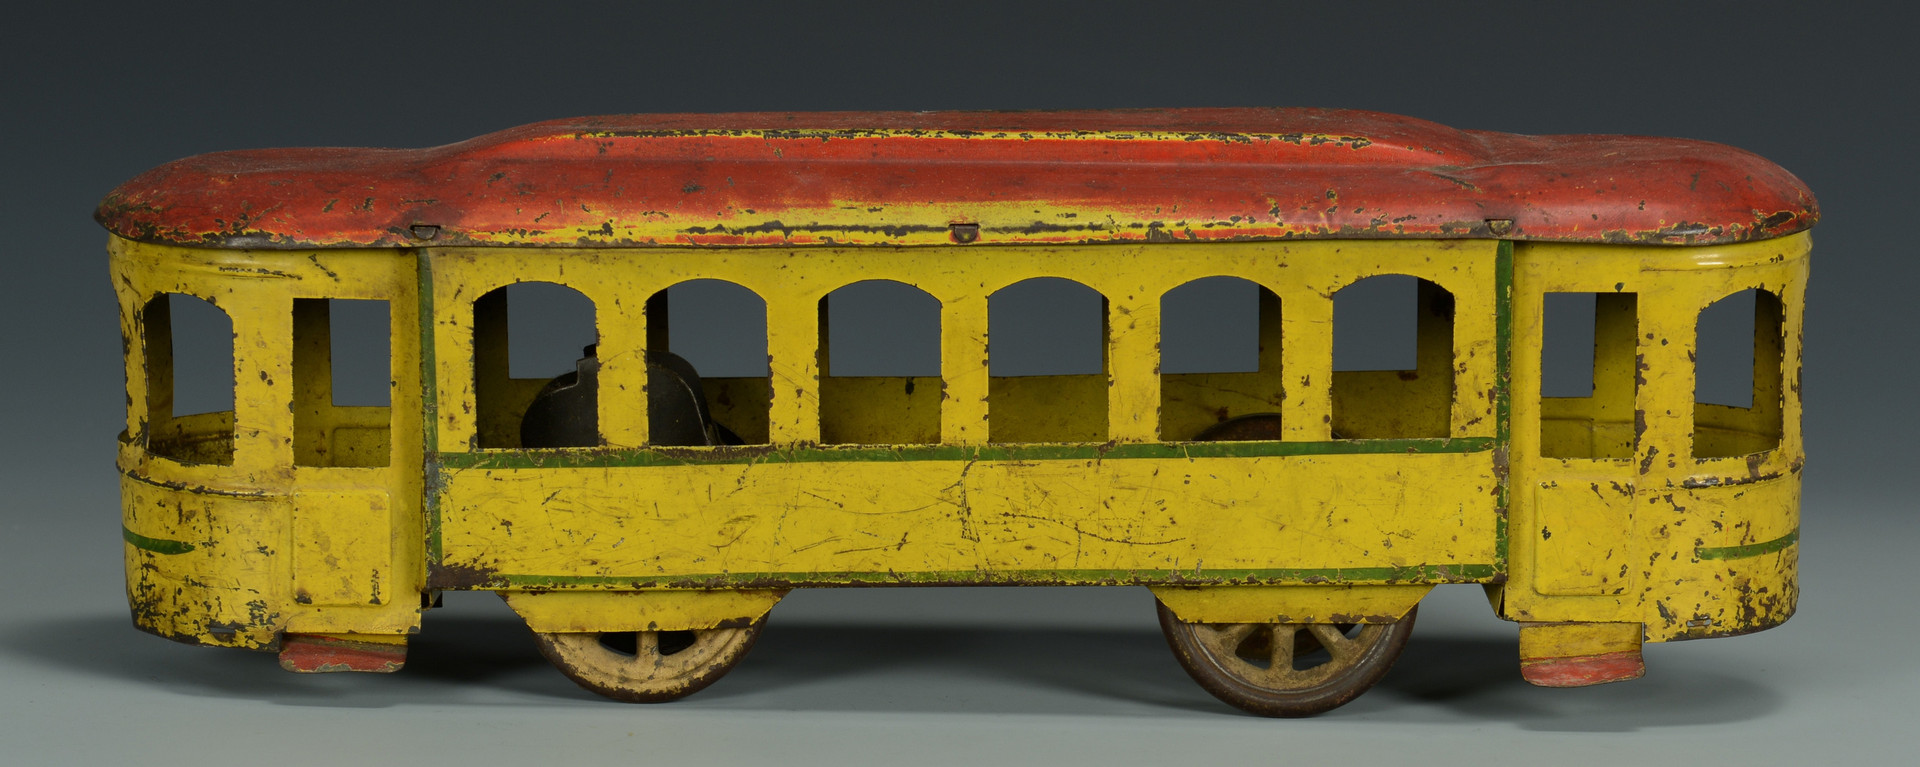 Lot 465: 2 Hill Climber Trains, Trolley & Wagon Cars (5 Ite